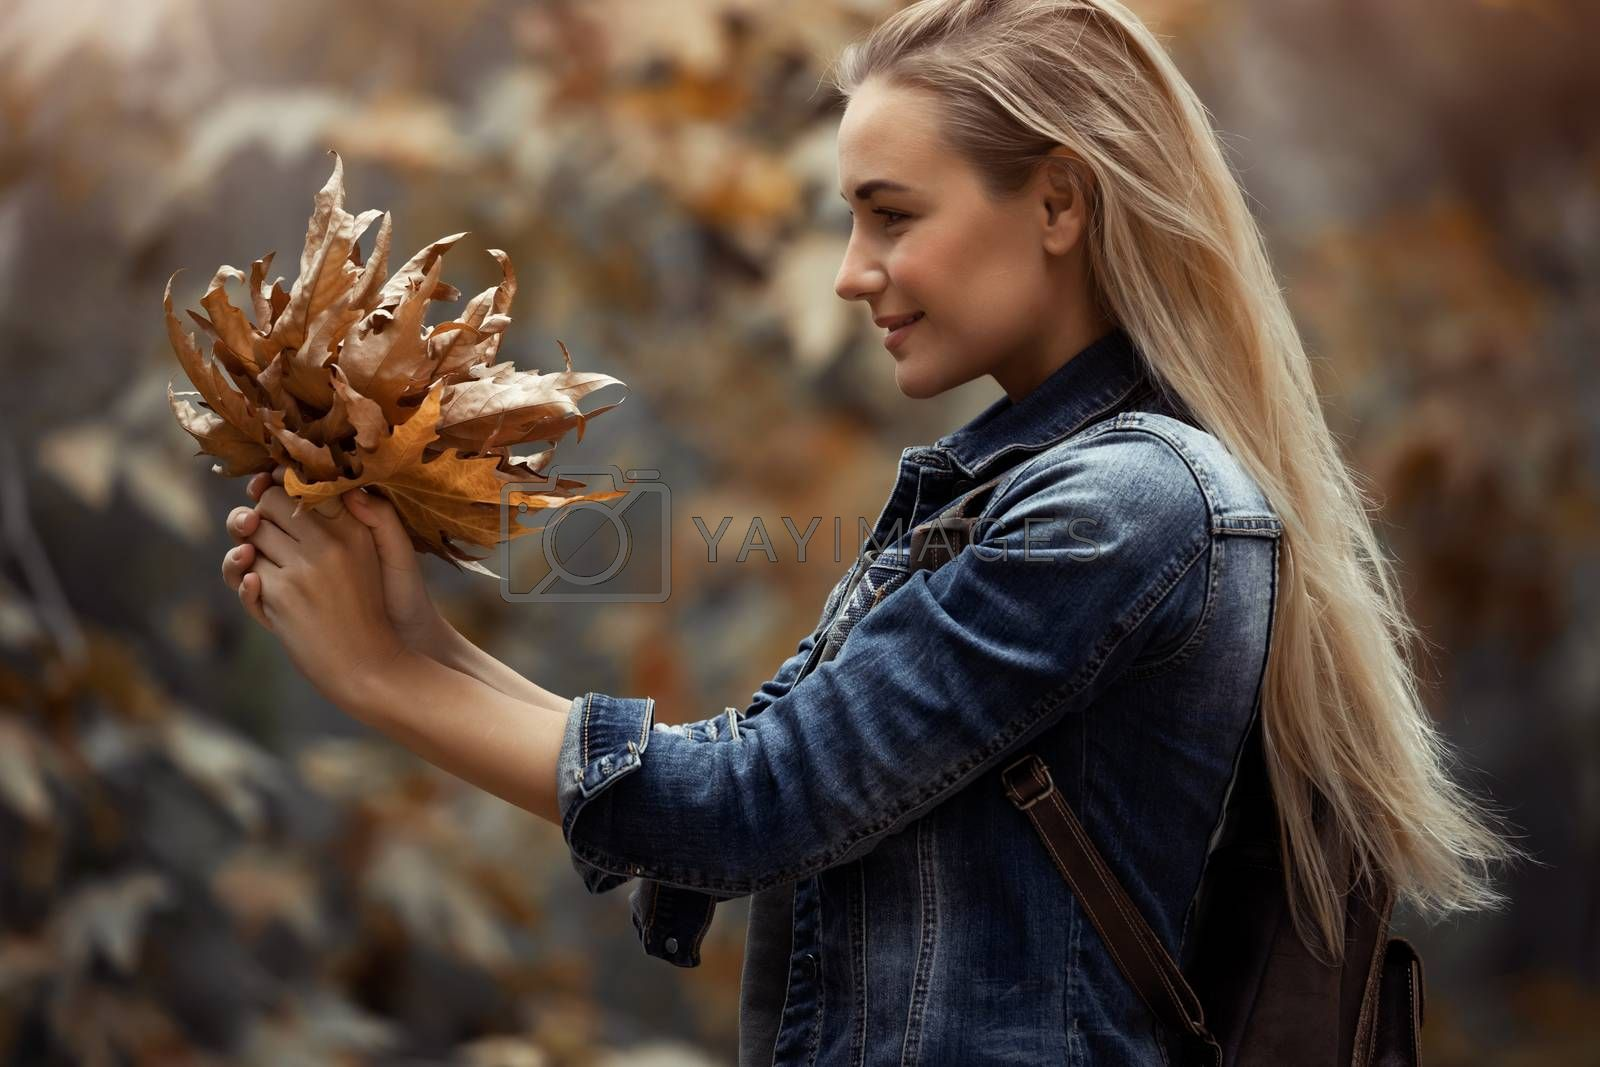 Profile Portrait of a Beautiful Blond Girl with Nice Bouquet of Dry Tree Leaves in the Park. Enjoying Beauty of Autumn Nature.